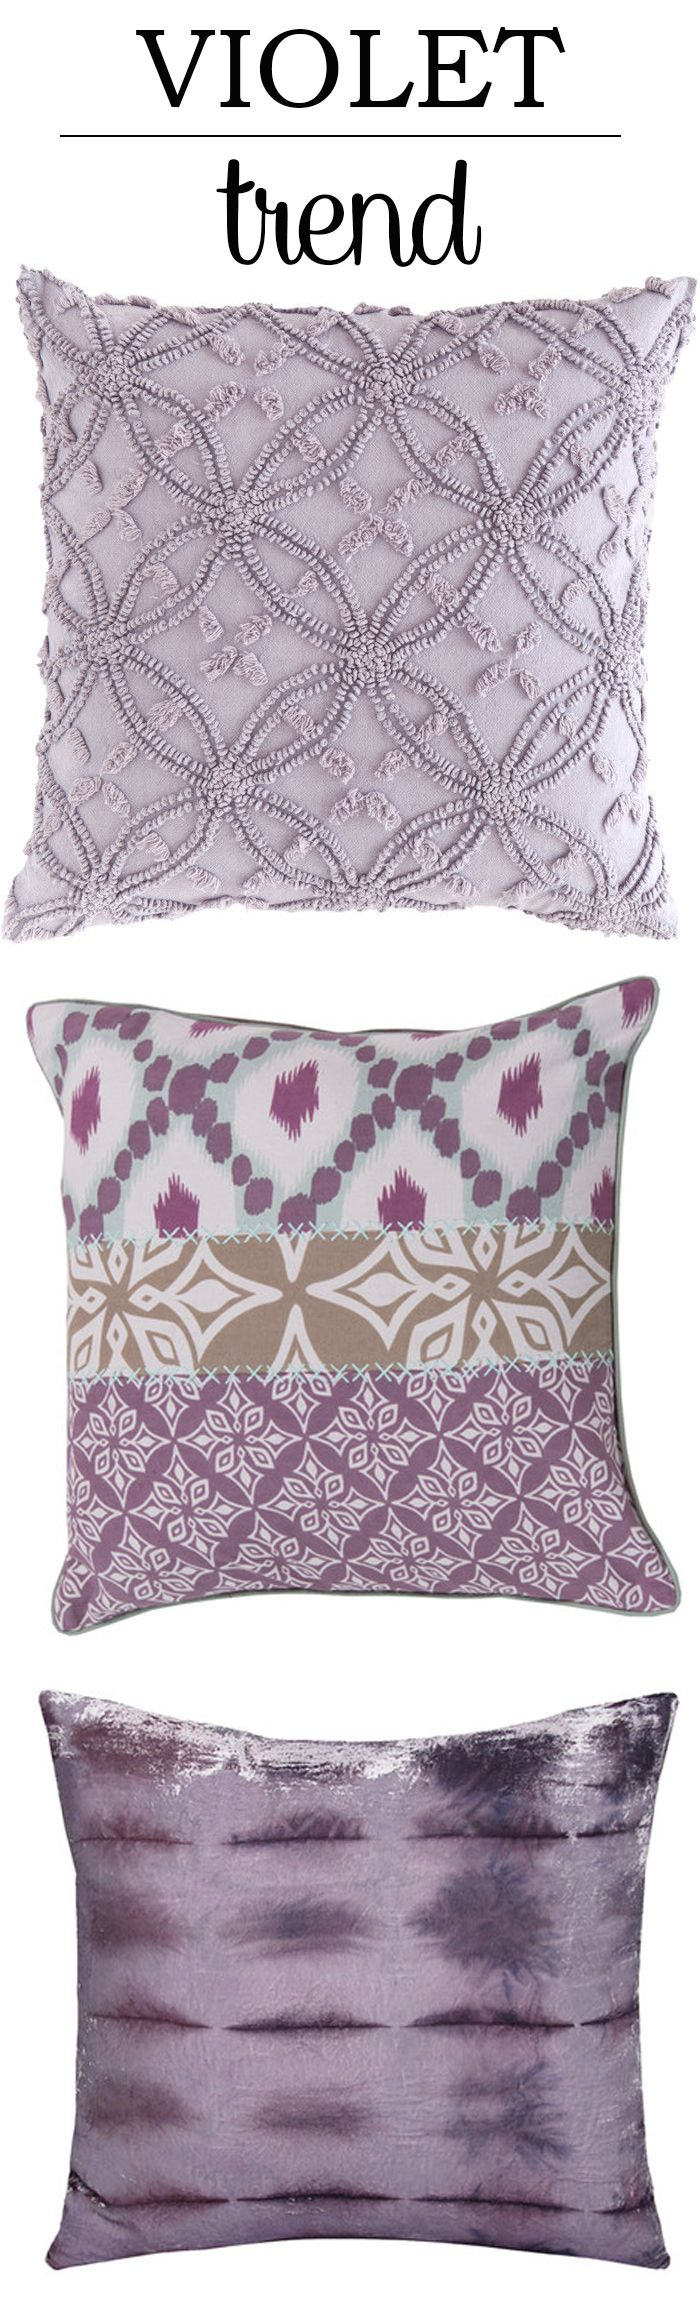 Violet Trend in Chenille, Patchwork, and Valvet Tie Dye Fabrics!